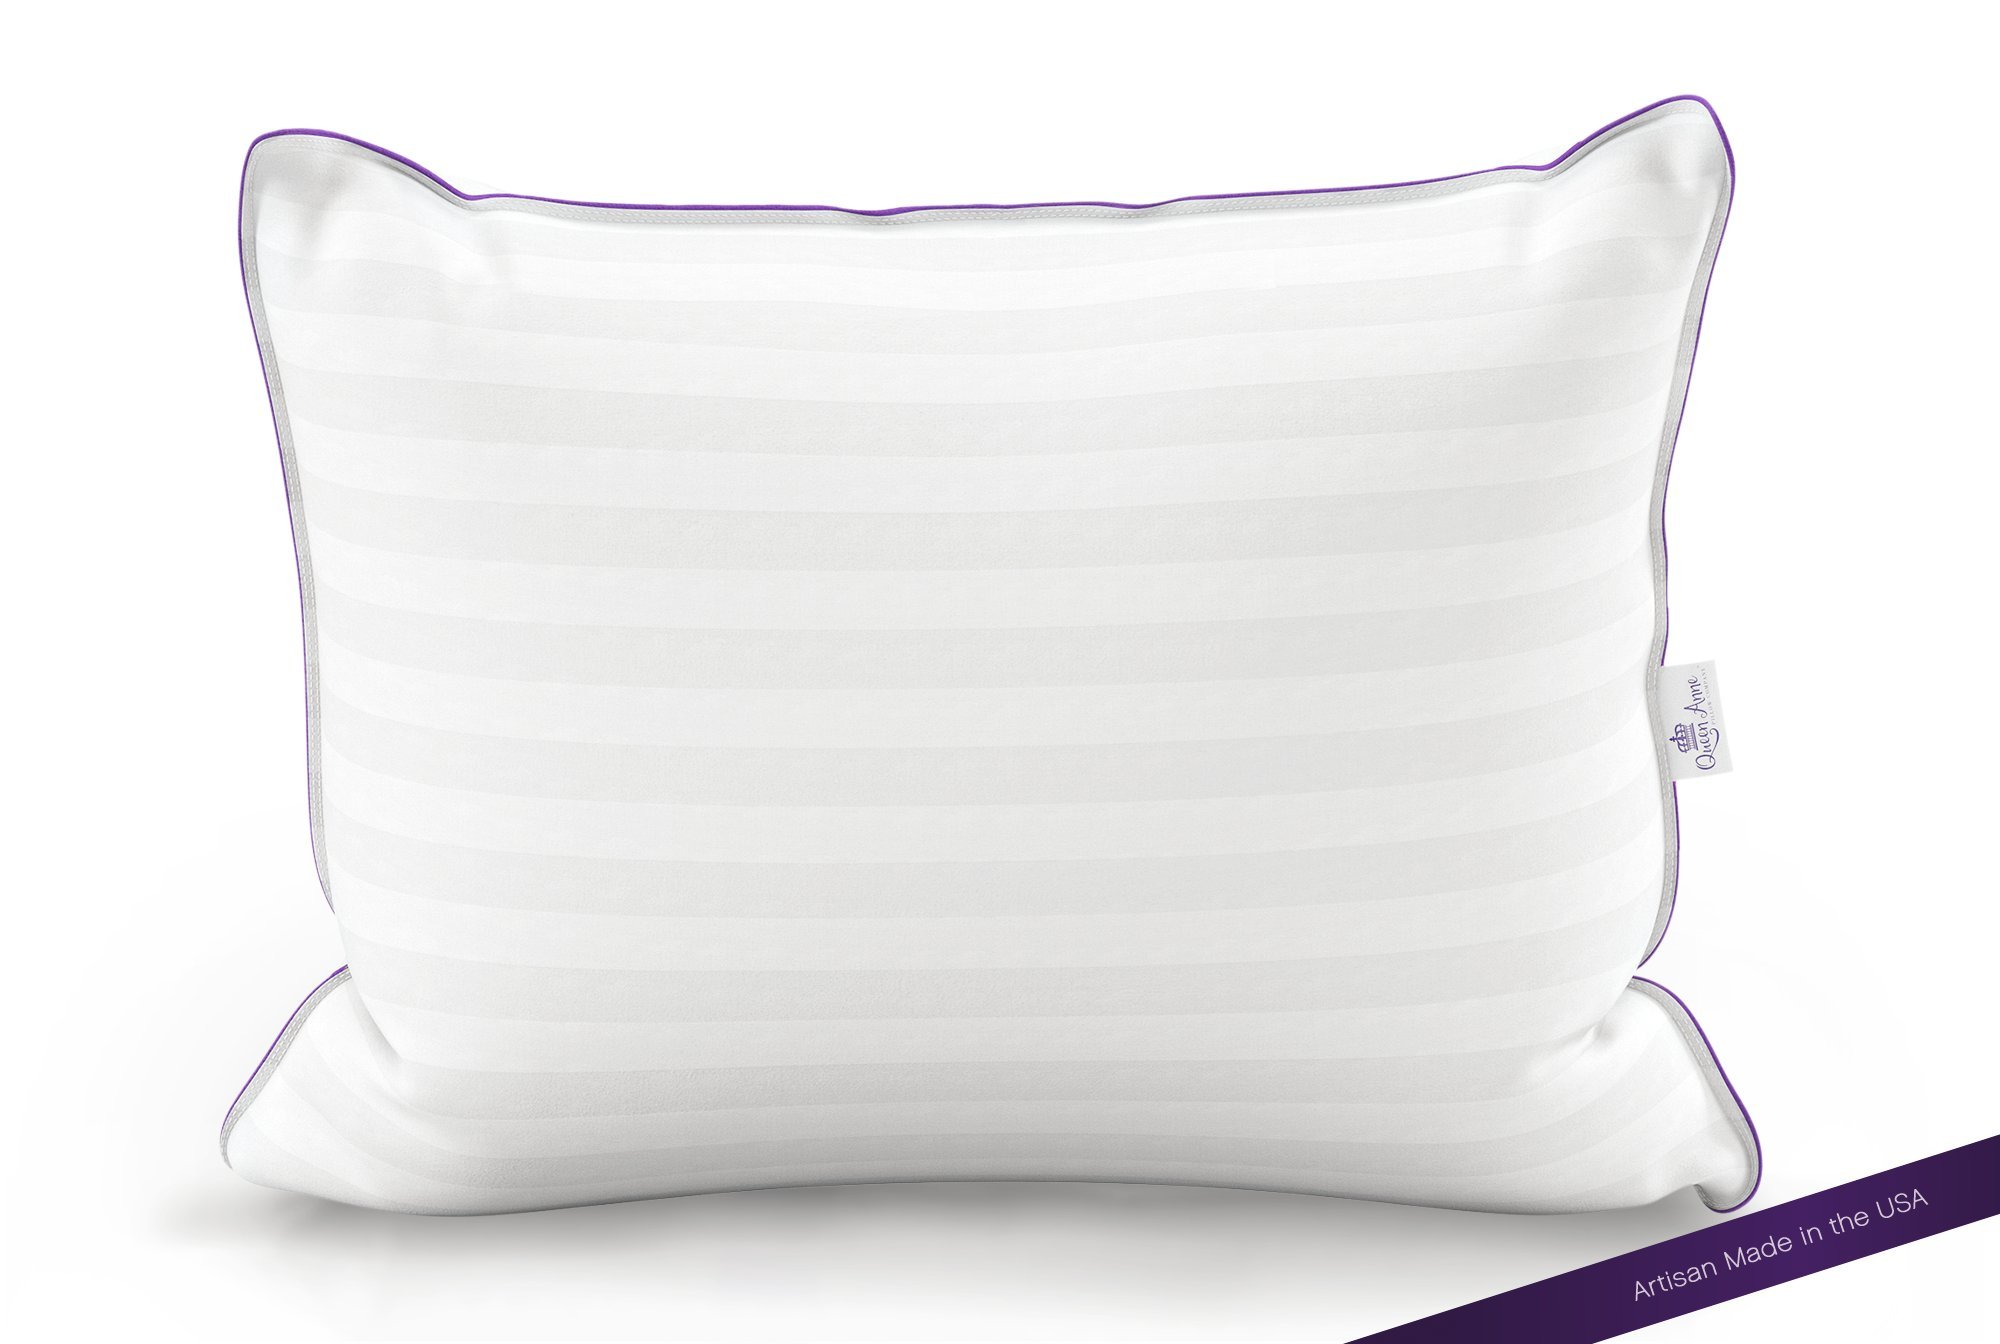 The Original Queen Anne Pillow - French Goose Down Luxury Pillow - Hotel Collection - Made in USA (Queen Size, Soft Fill) by Queen Anne Pillow Company